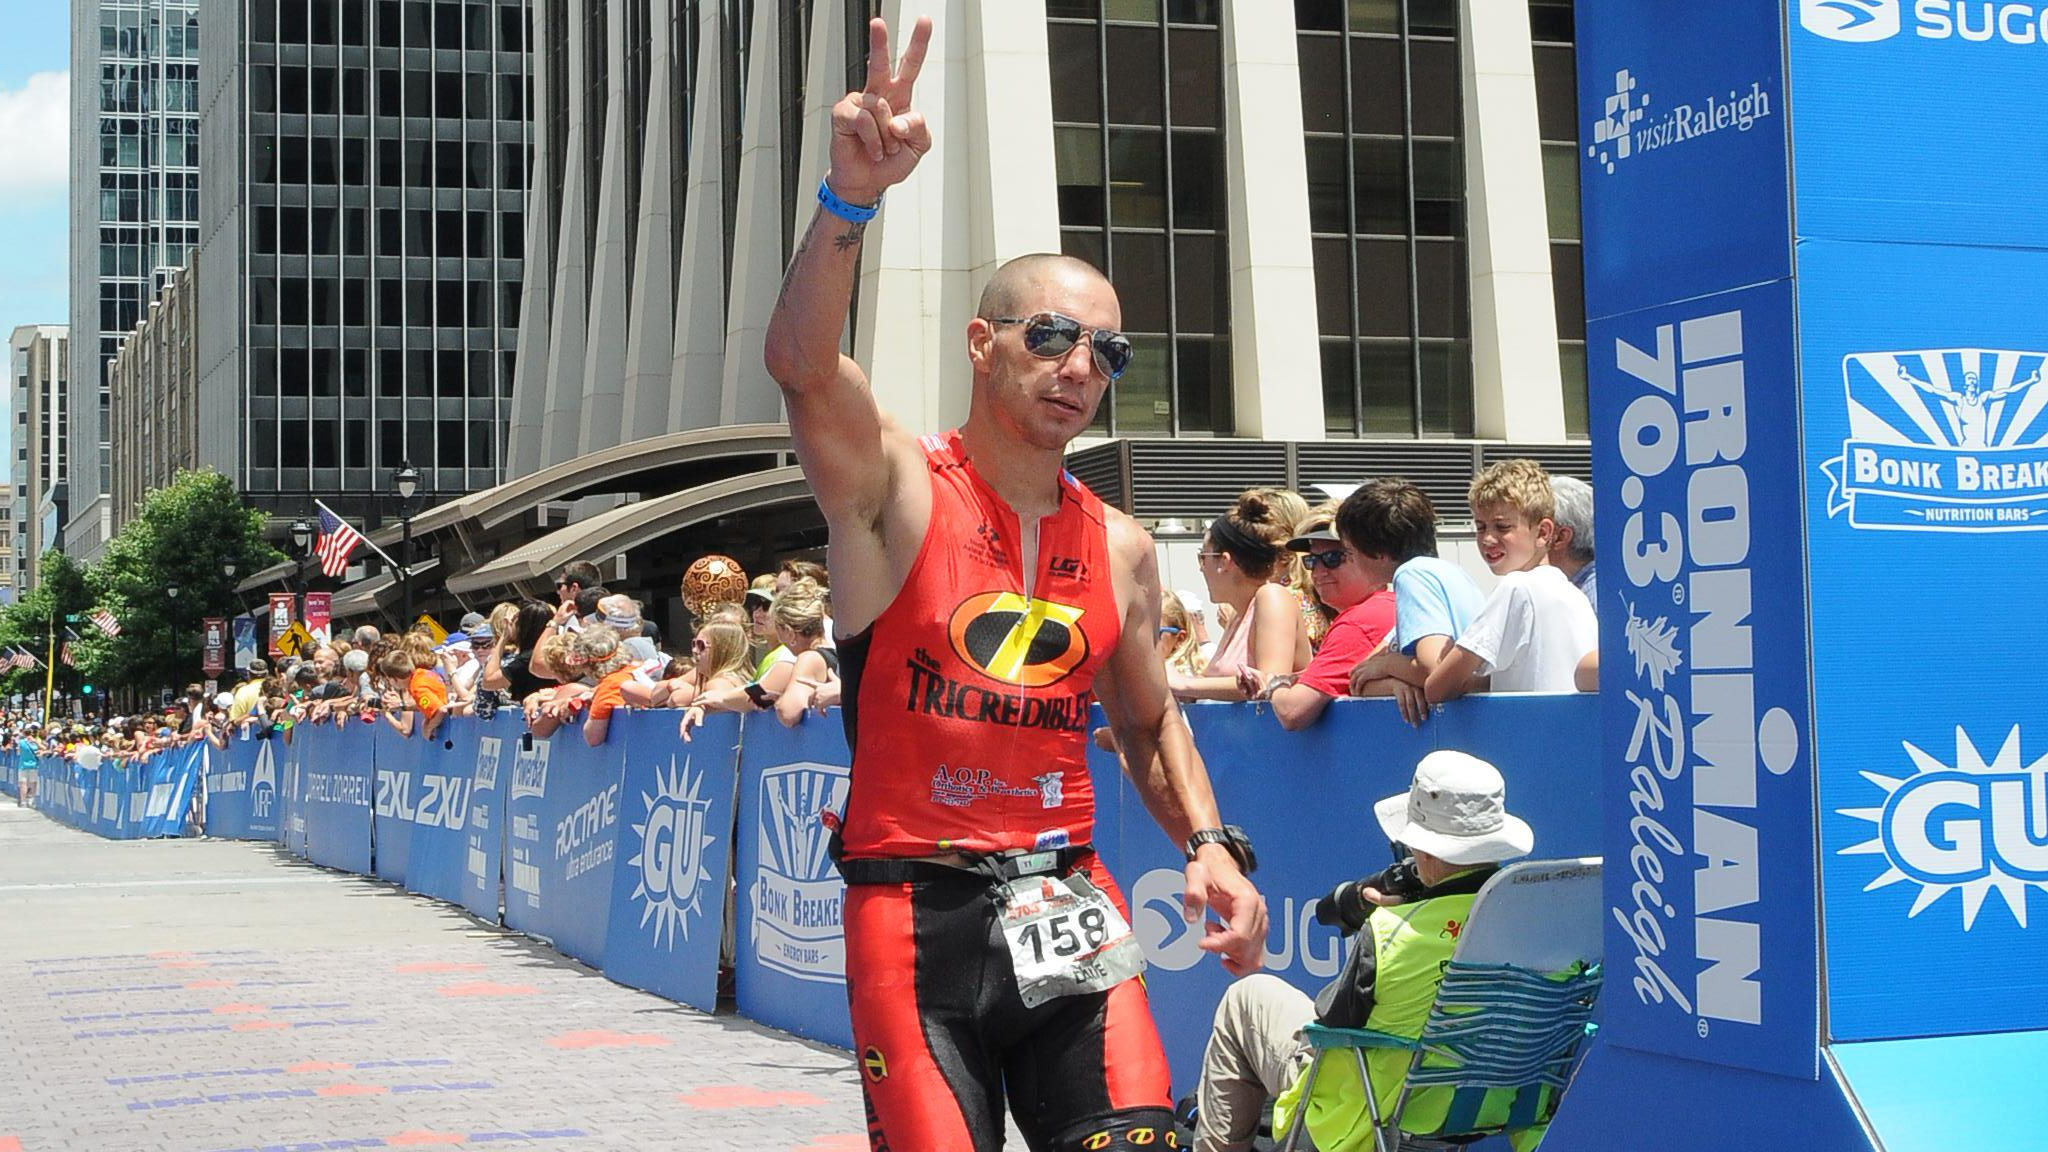 Dave Mirra, finishing his first IRONMAN 70.3 race last year in Raleigh, North Carolina.